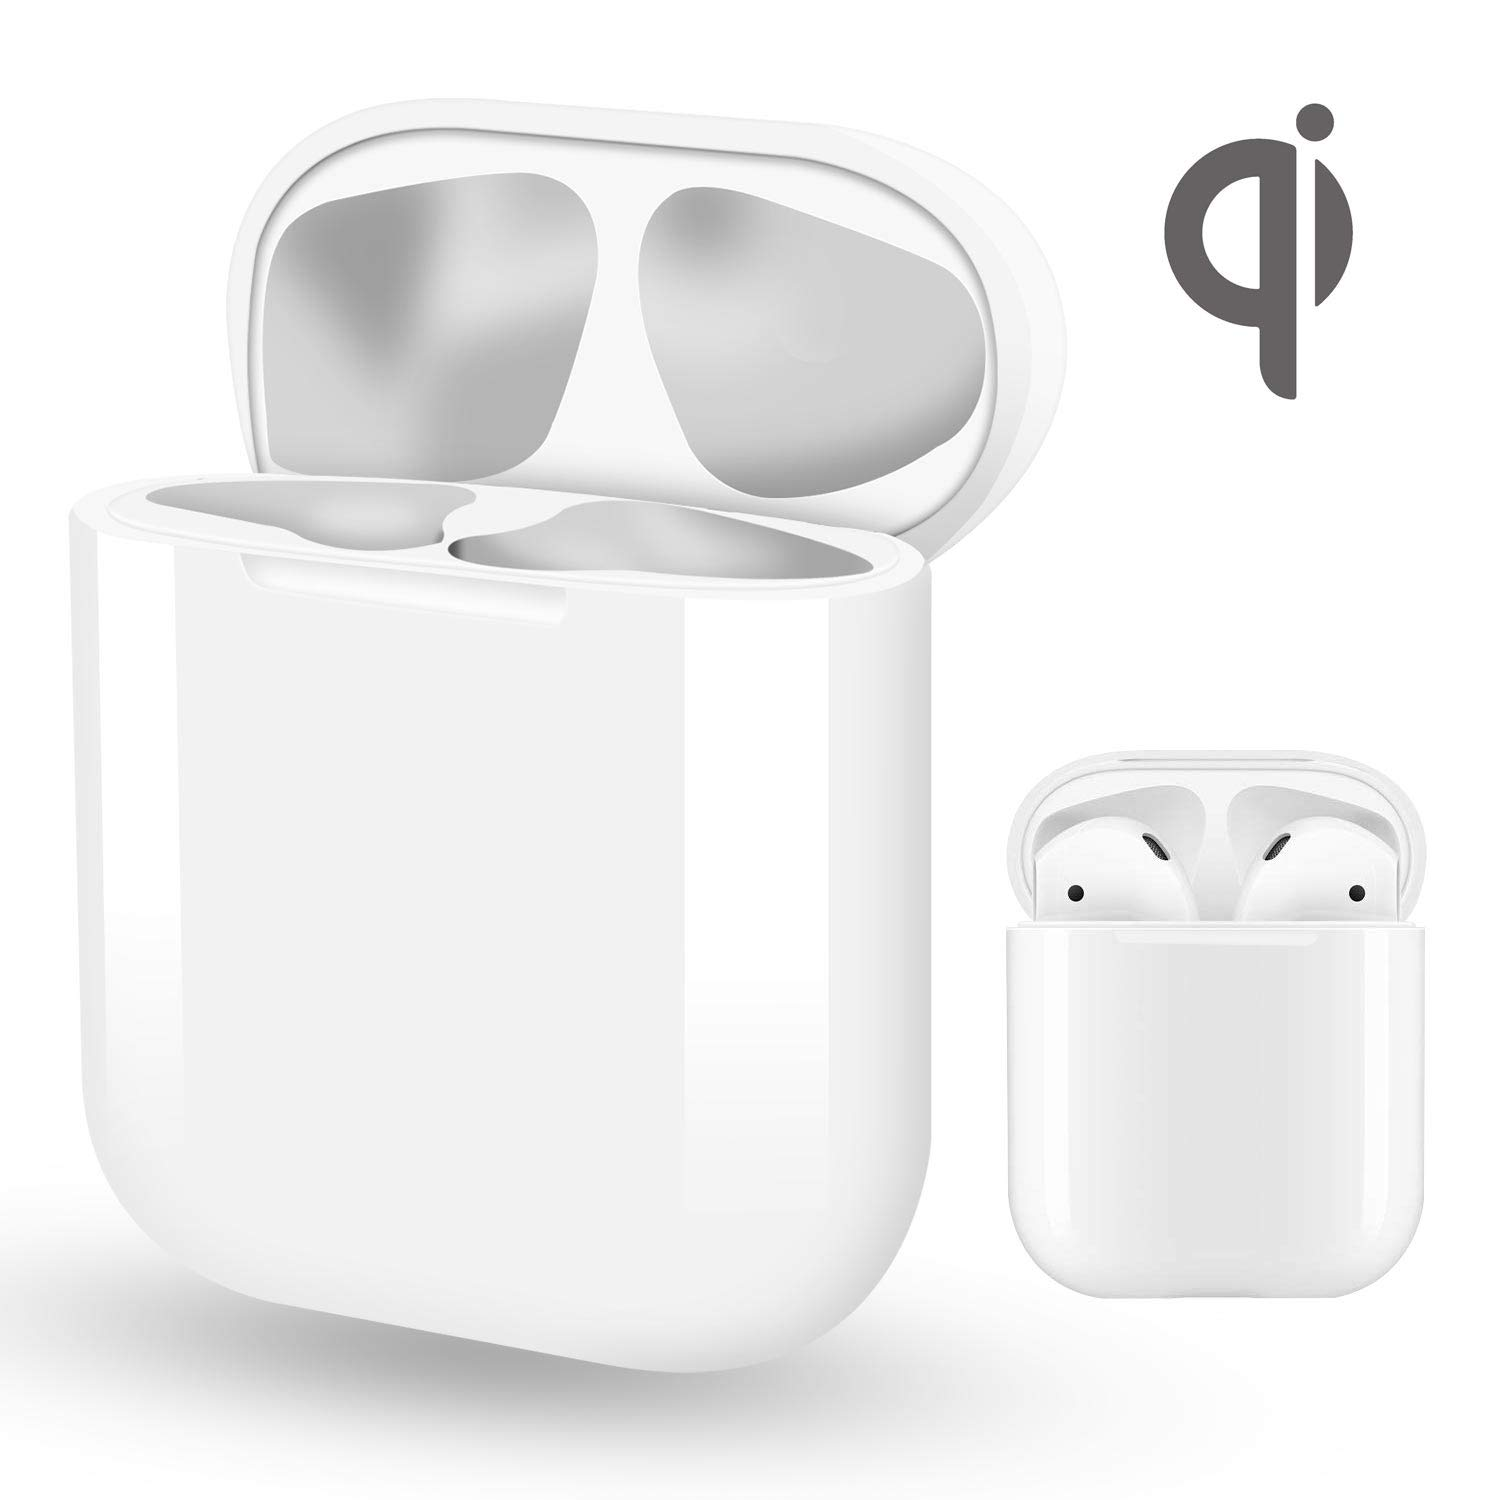 Wireless Charging Case Compatible with Airpods & Airpods 2, Air pod Charger Supply 5 Times Charge, QI Efficient Charging and Protect Earphones - NO SYNC Button NO Bluetooth